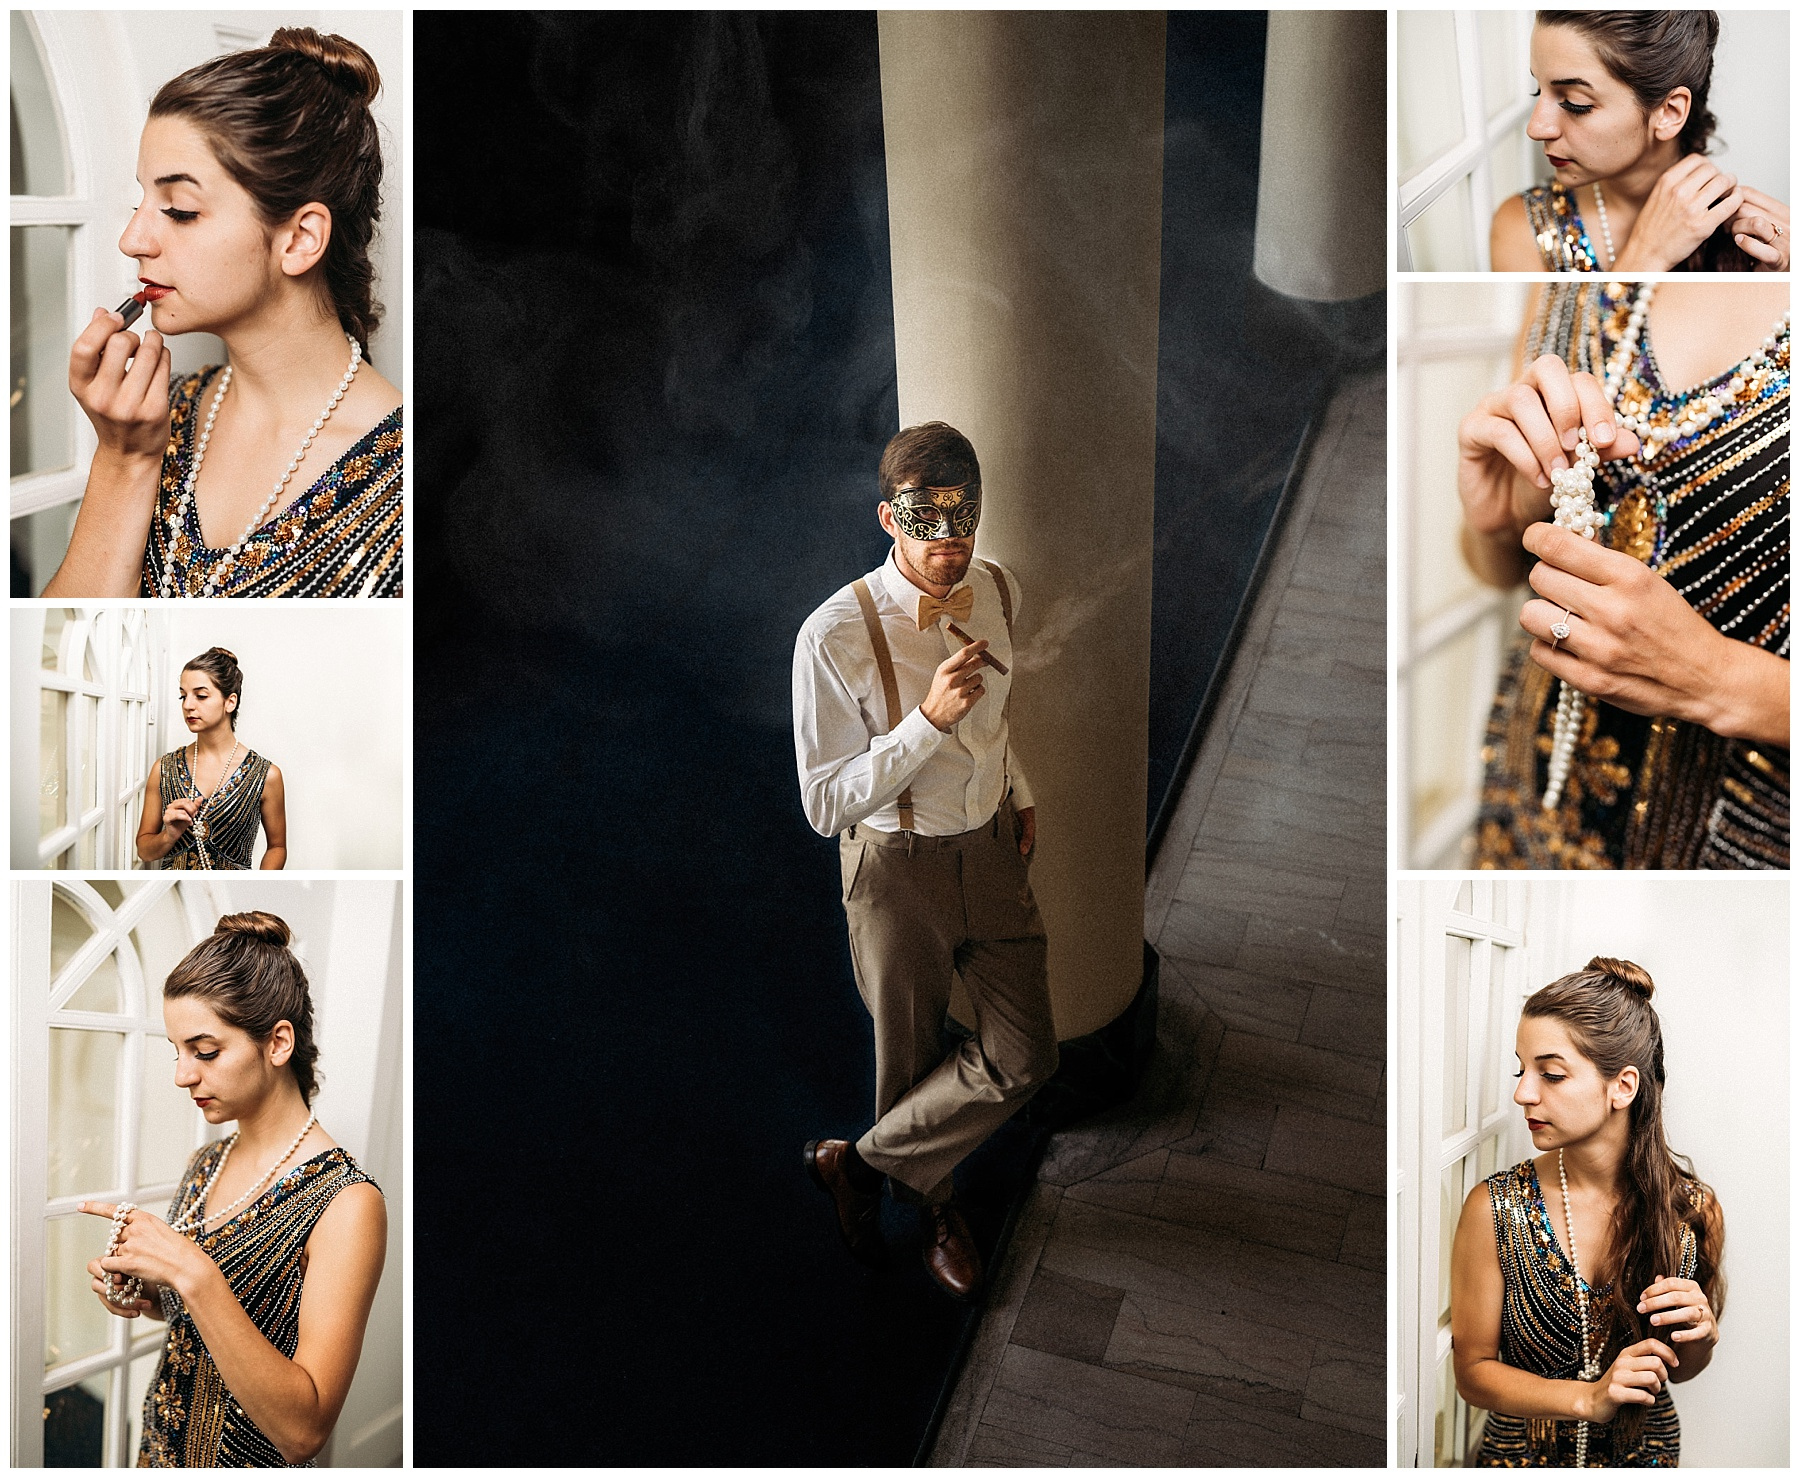 gatsby-styled-couples-shoot-final-g-web-20190707-0001_CCS-1.jpg